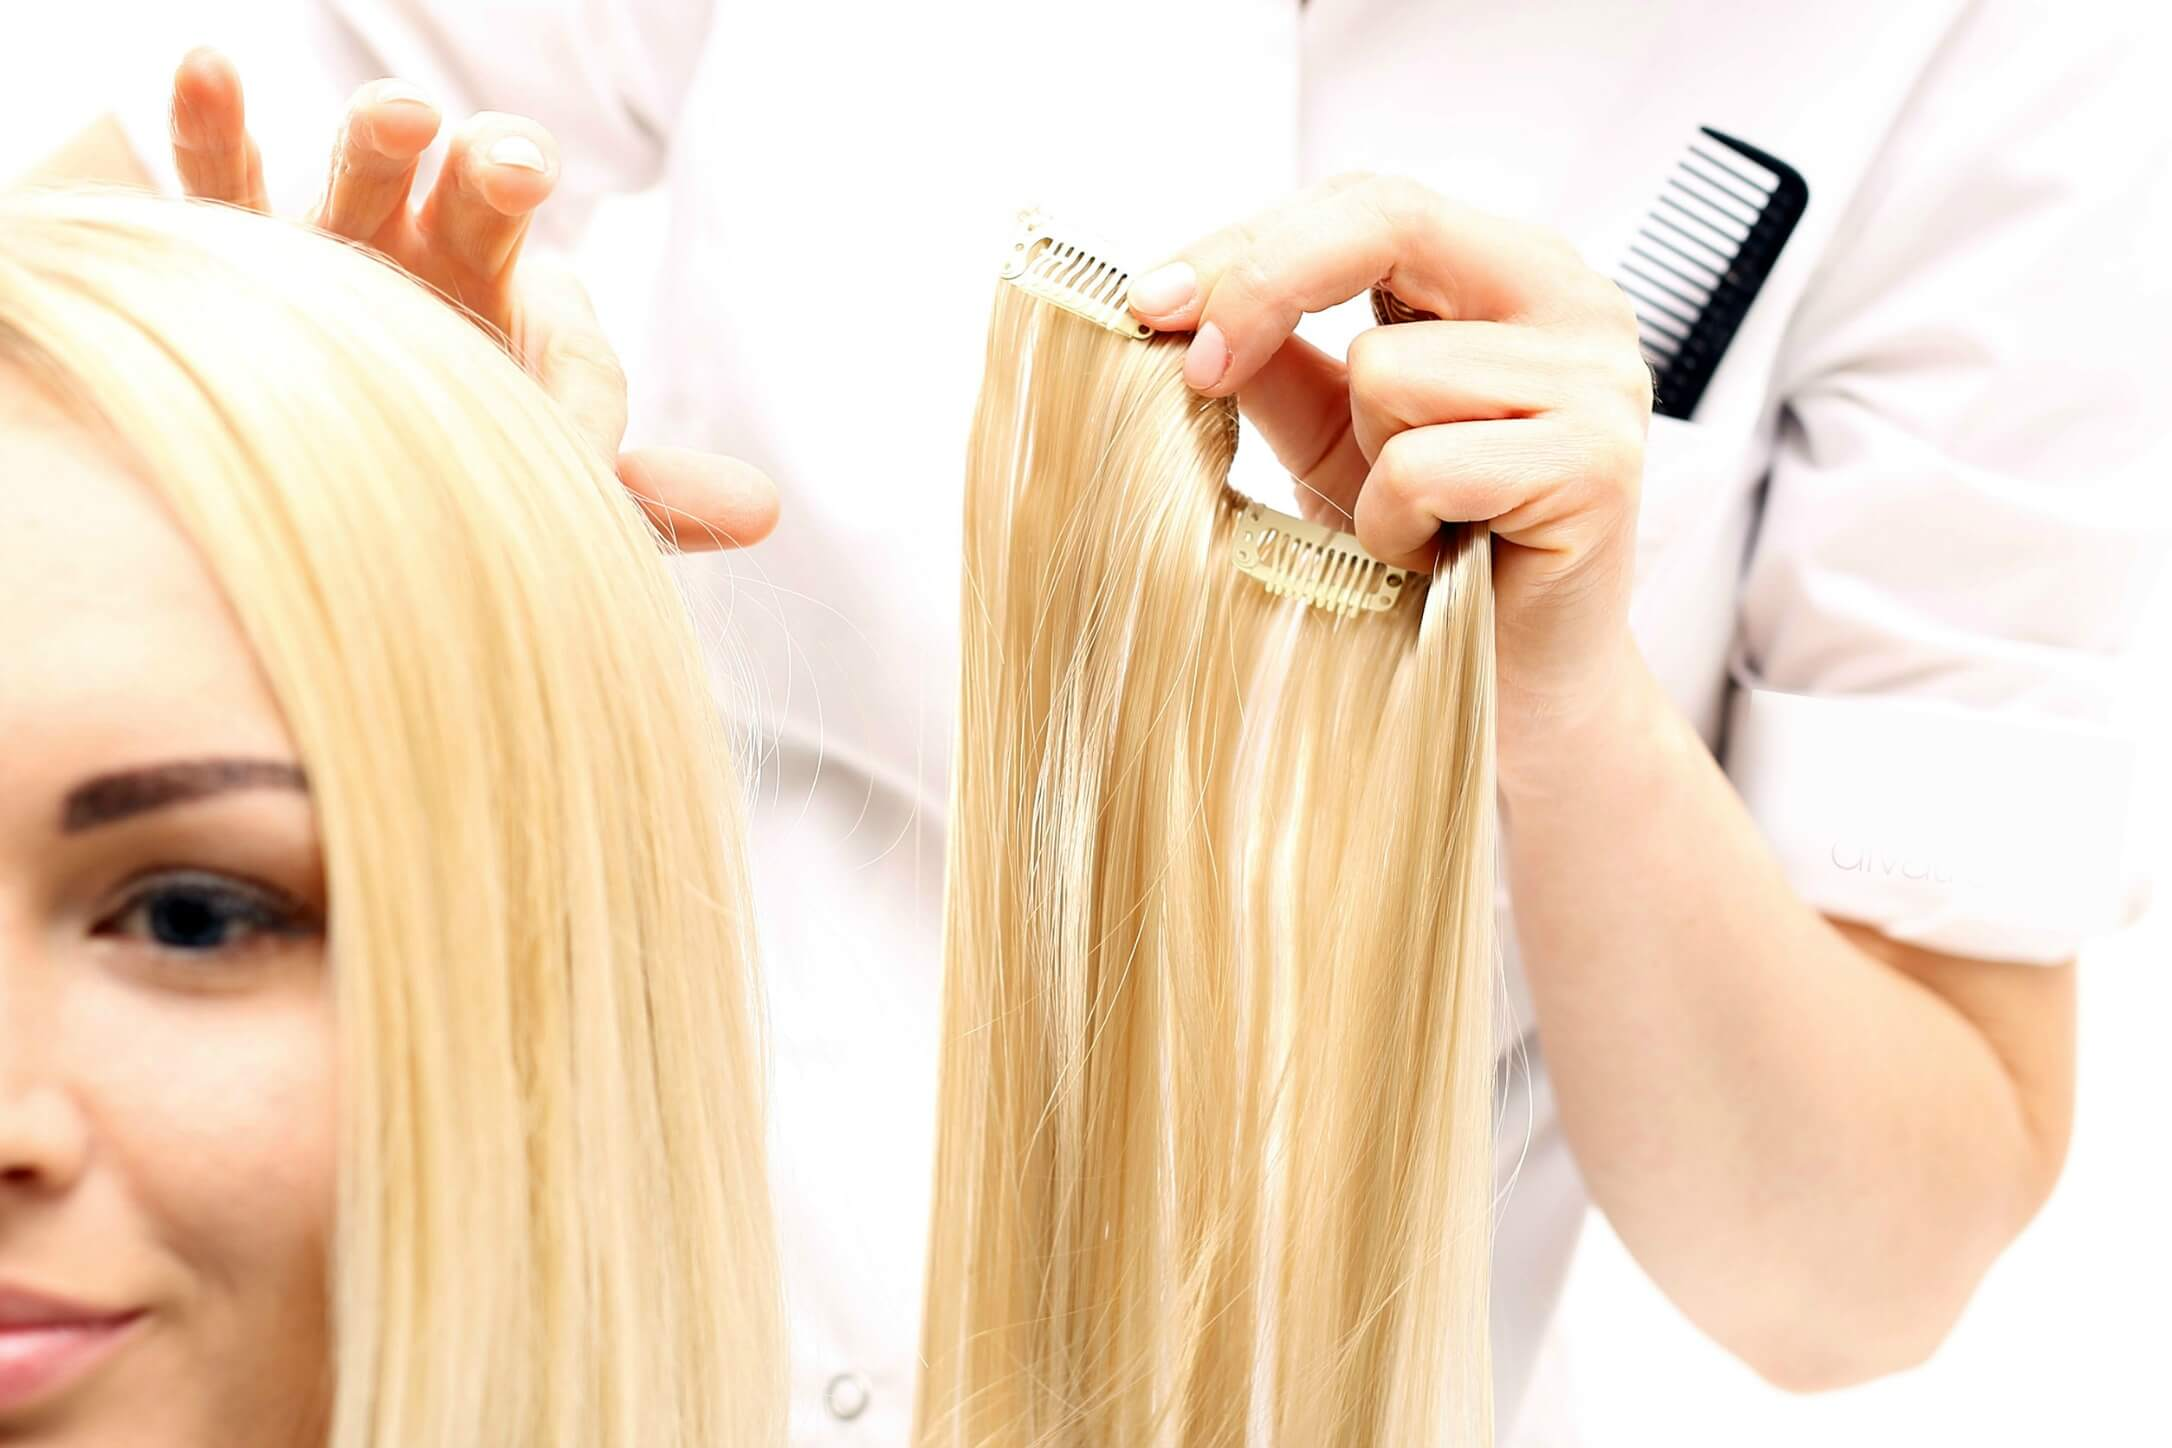 Tips For Hair Extensions For Women Over 40 by beauty after forty